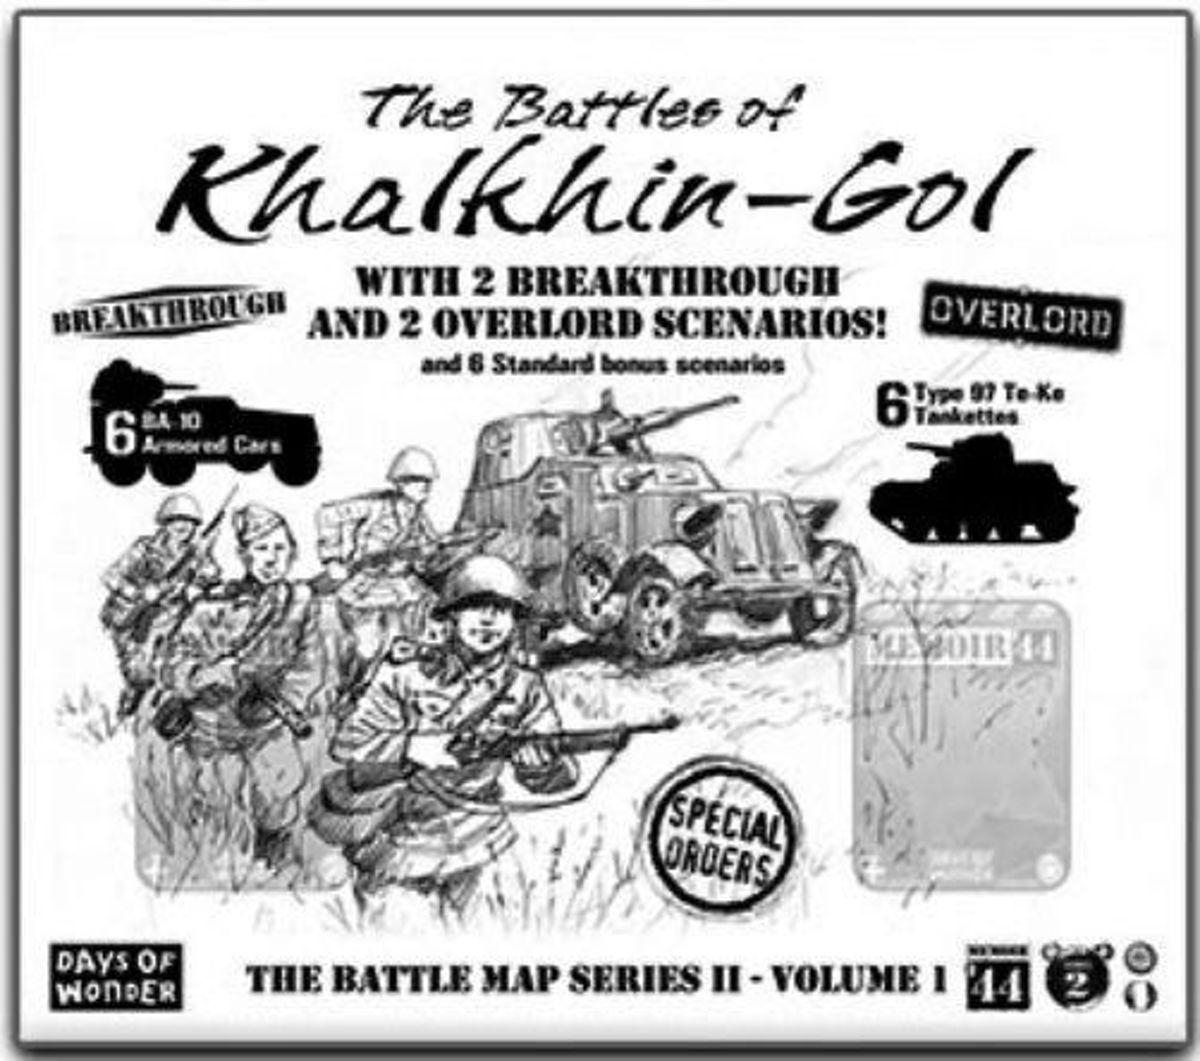 Memoir 44: The Battles of Khalkhin-Gol